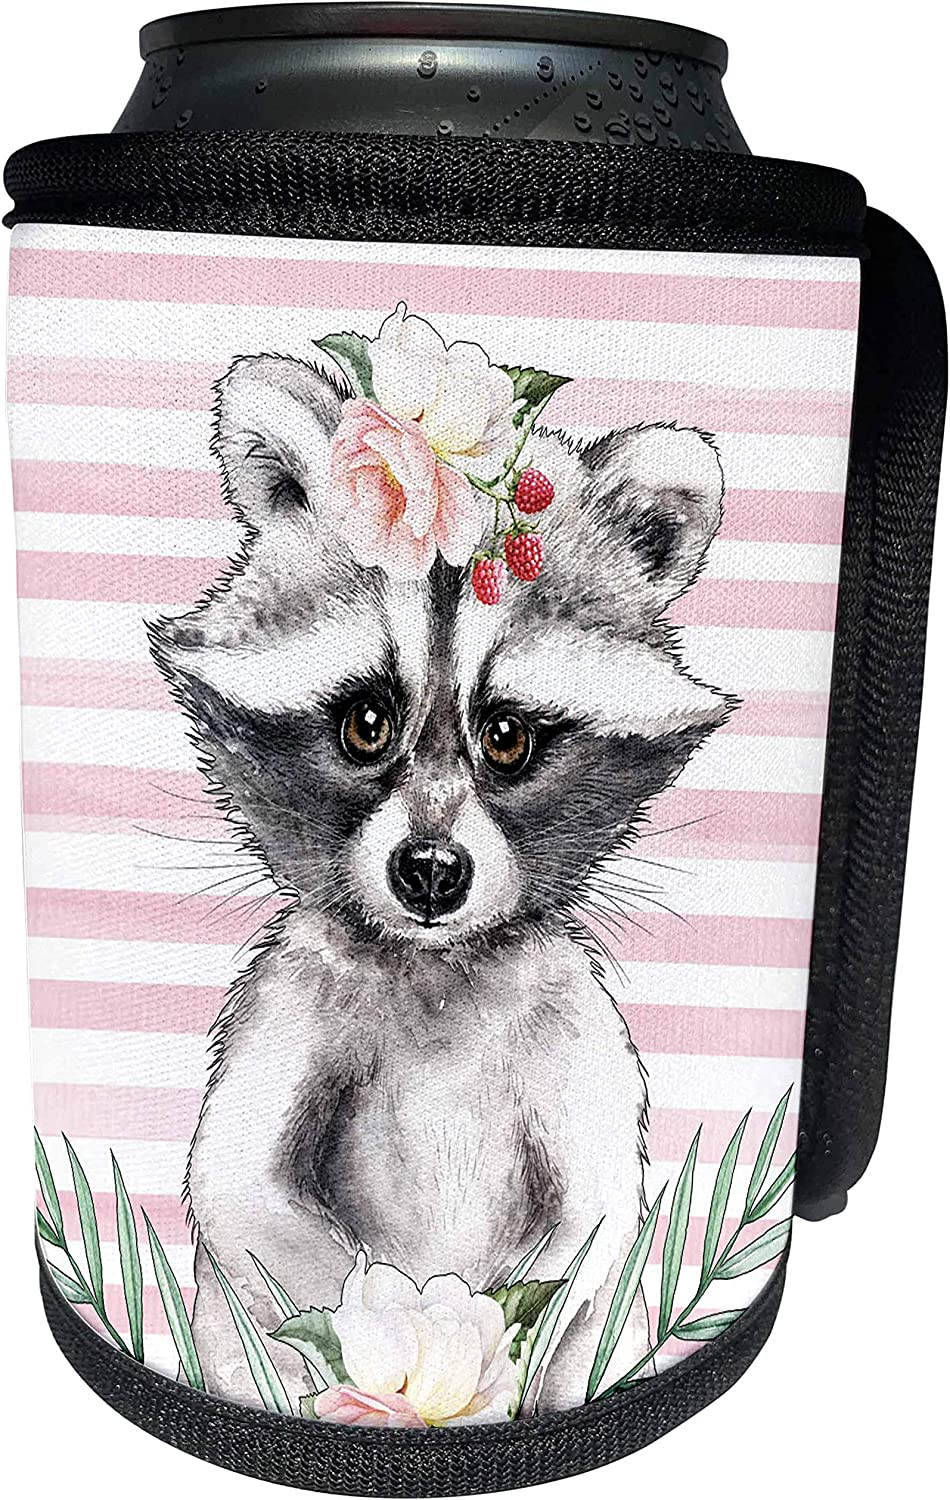 3dRose Anne Marie Baugh - Designs and Illustrations - Cute Image Of Watercolor Racoon Design - Can Cooler Bottle Wrap (cc_309385_1)